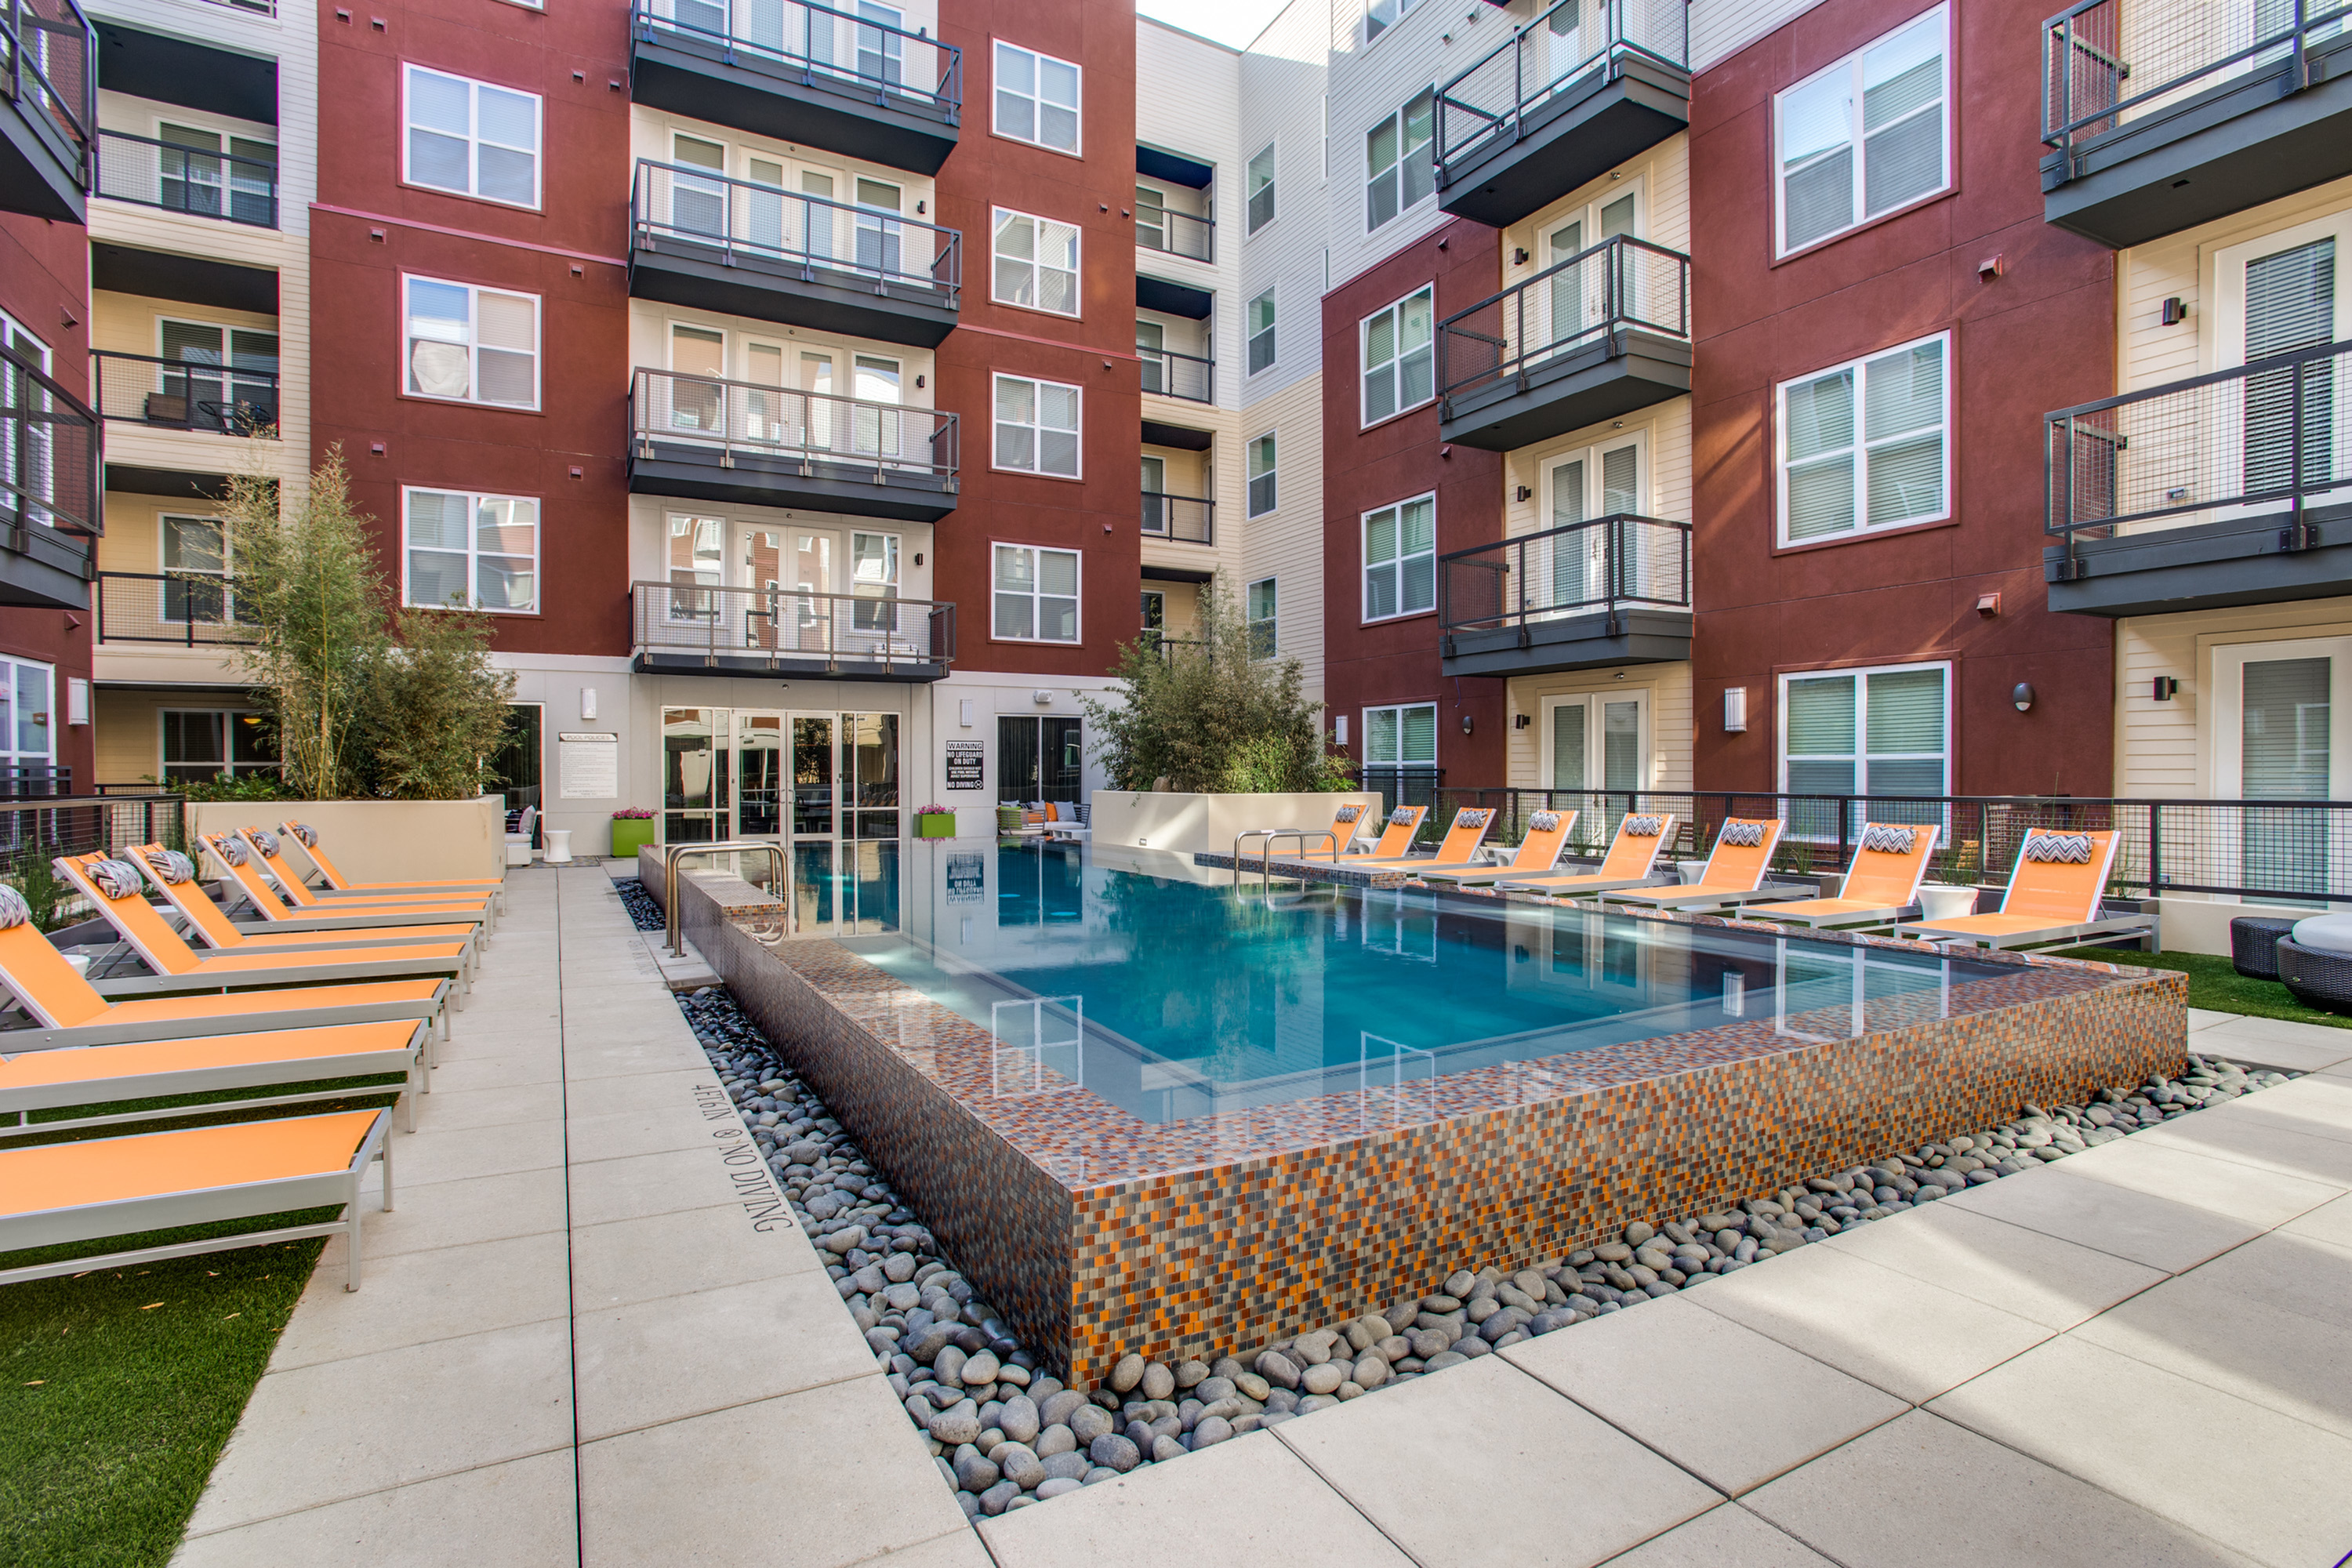 View of Pool Area, Showing Infinity-Edge Pool, Loungers, Patios, and Balconies at Routh Street Flats Apartments